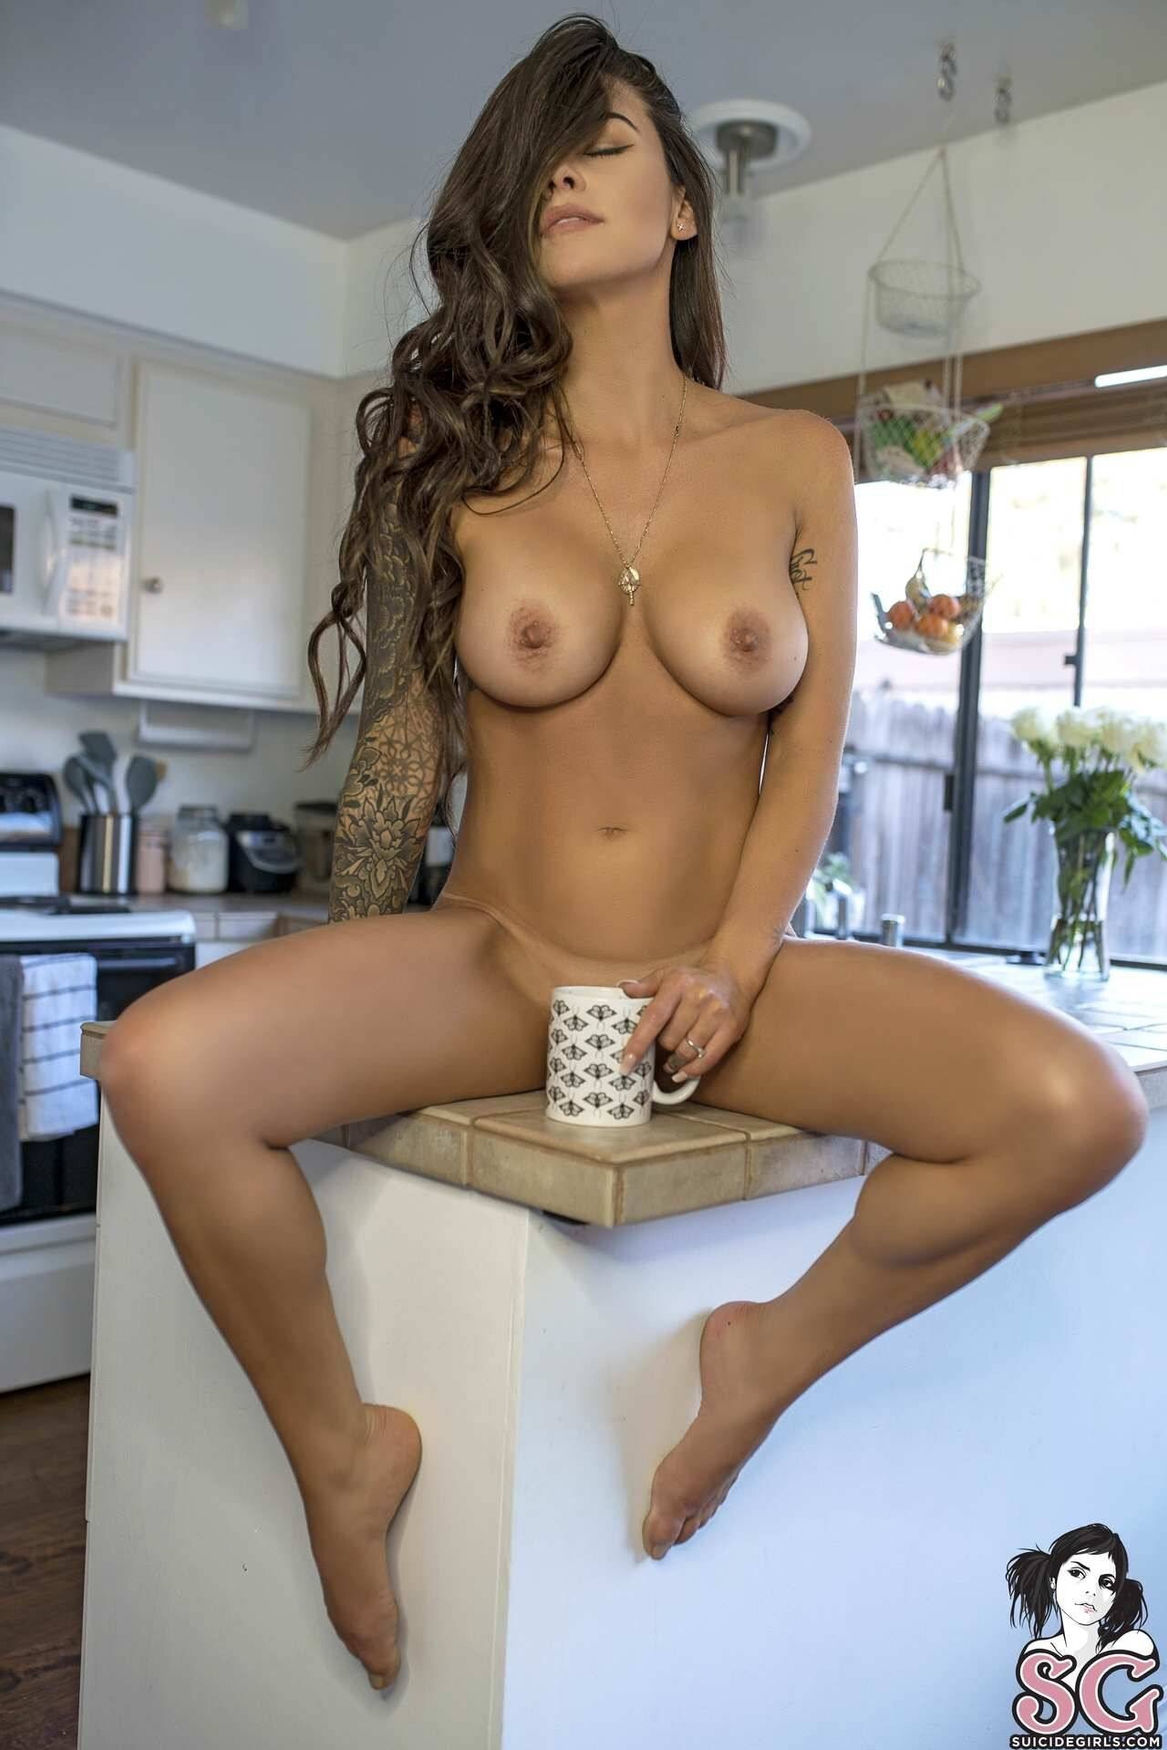 Breakfast is ready…a cup of coffee & pussy..